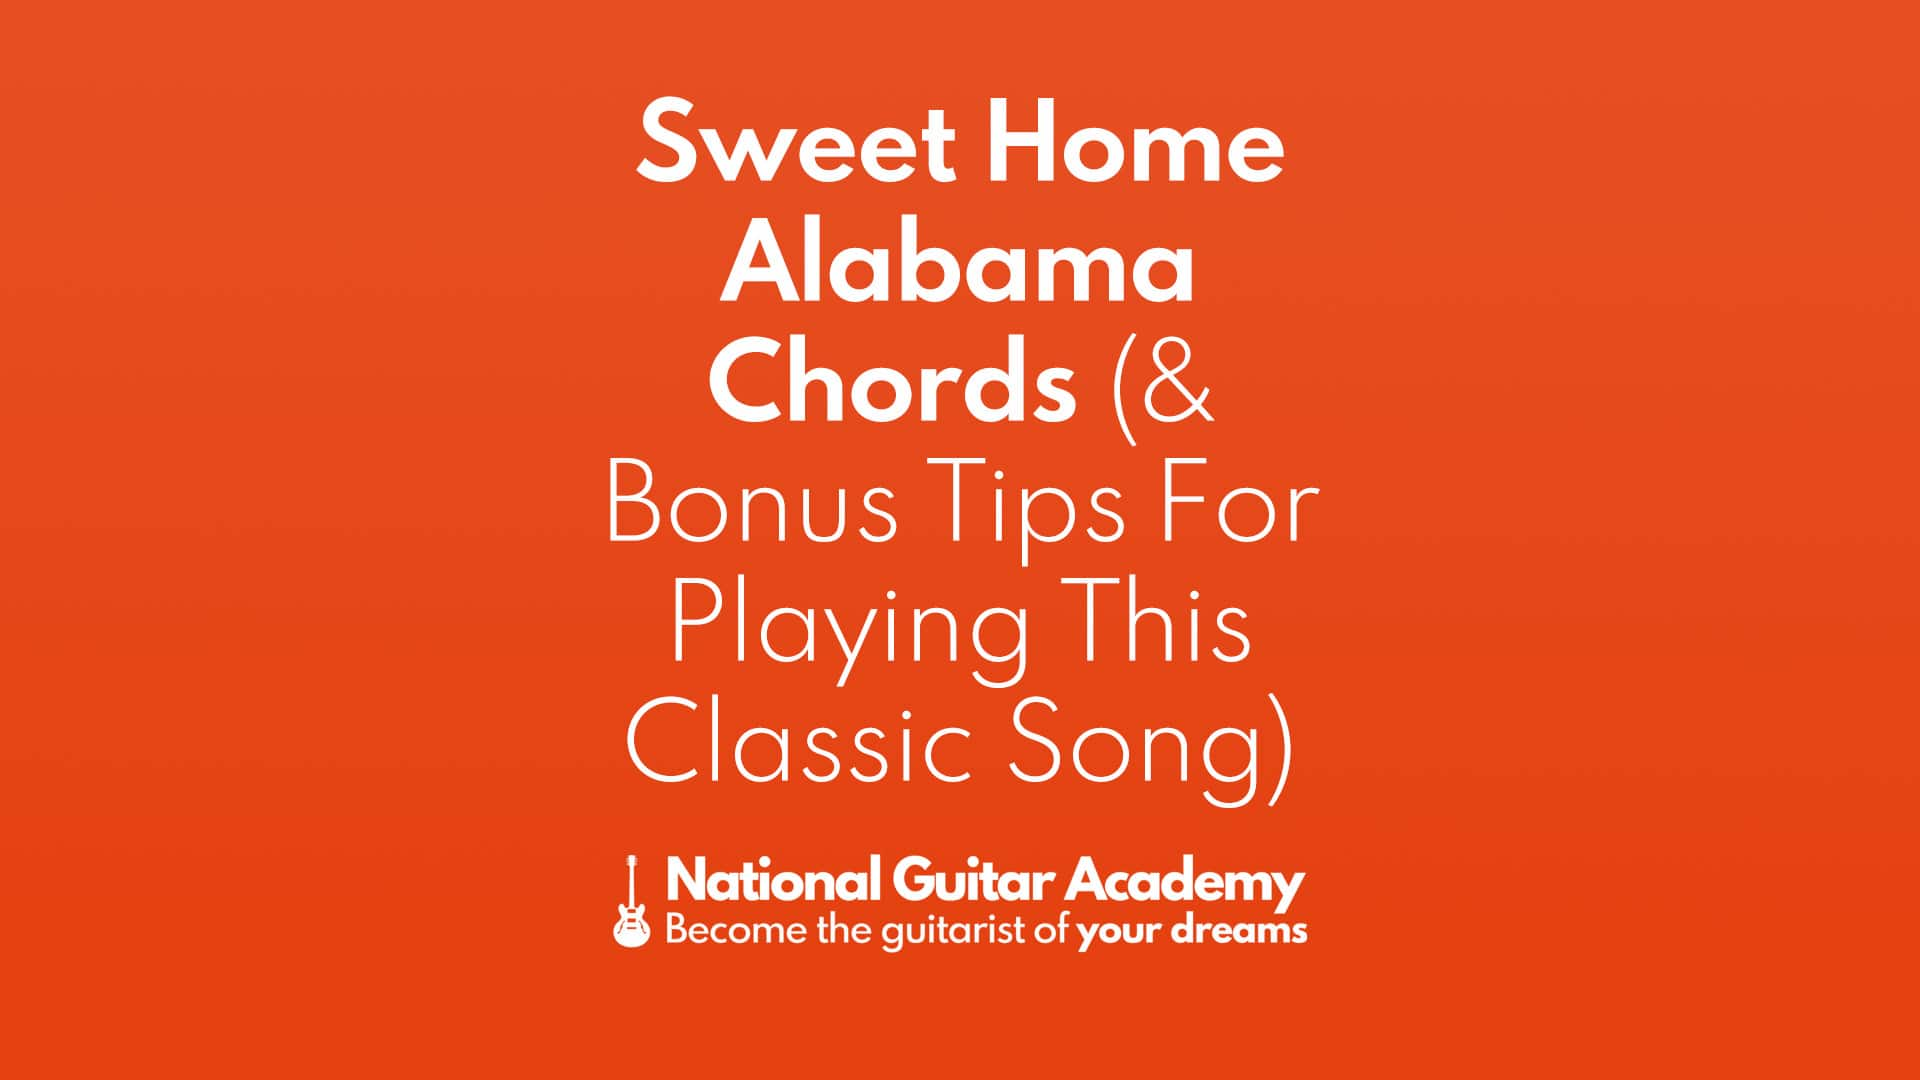 Includes easy guitar tab for guitar or strum or voice in g major. Sweet Home Alabama Chords Bonus Tips For Playing This Classic Song Page 2 Of 2 National Guitar Academy